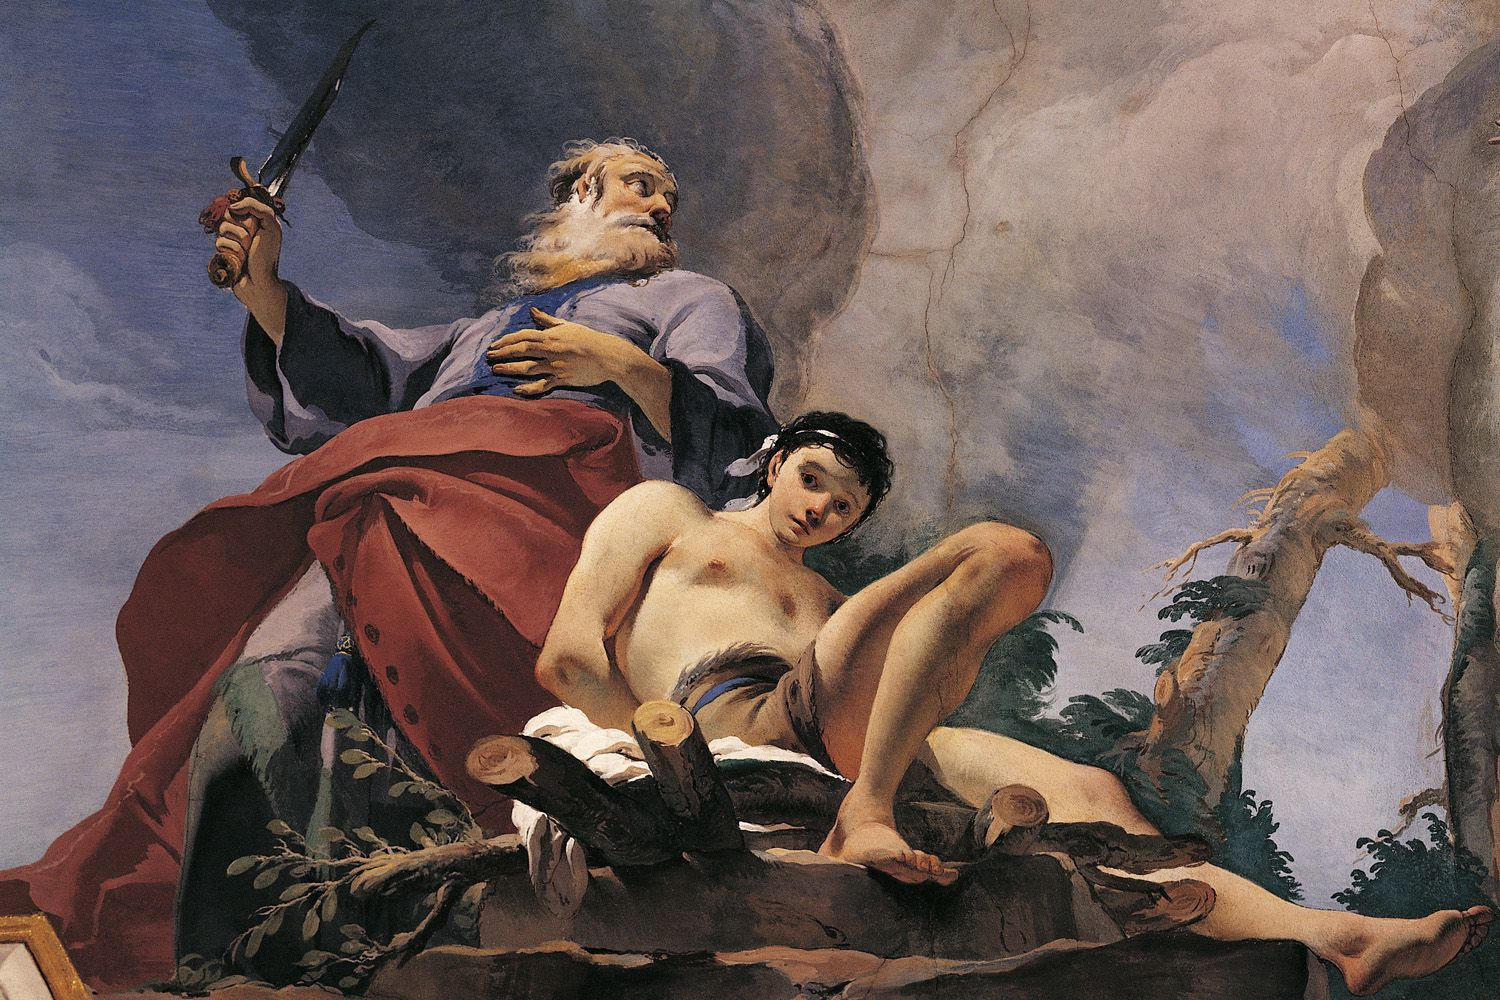 an analysis of the religious myth of abraham and his son Abraham the pimp sells wife for cattle and sacrifices son: stories from genesis wednesday, october 24, 2007 8 bible blasphemy abraham , bible study , old testament permalink 0 abraham is recognized as the father of three of the world's largest religions.